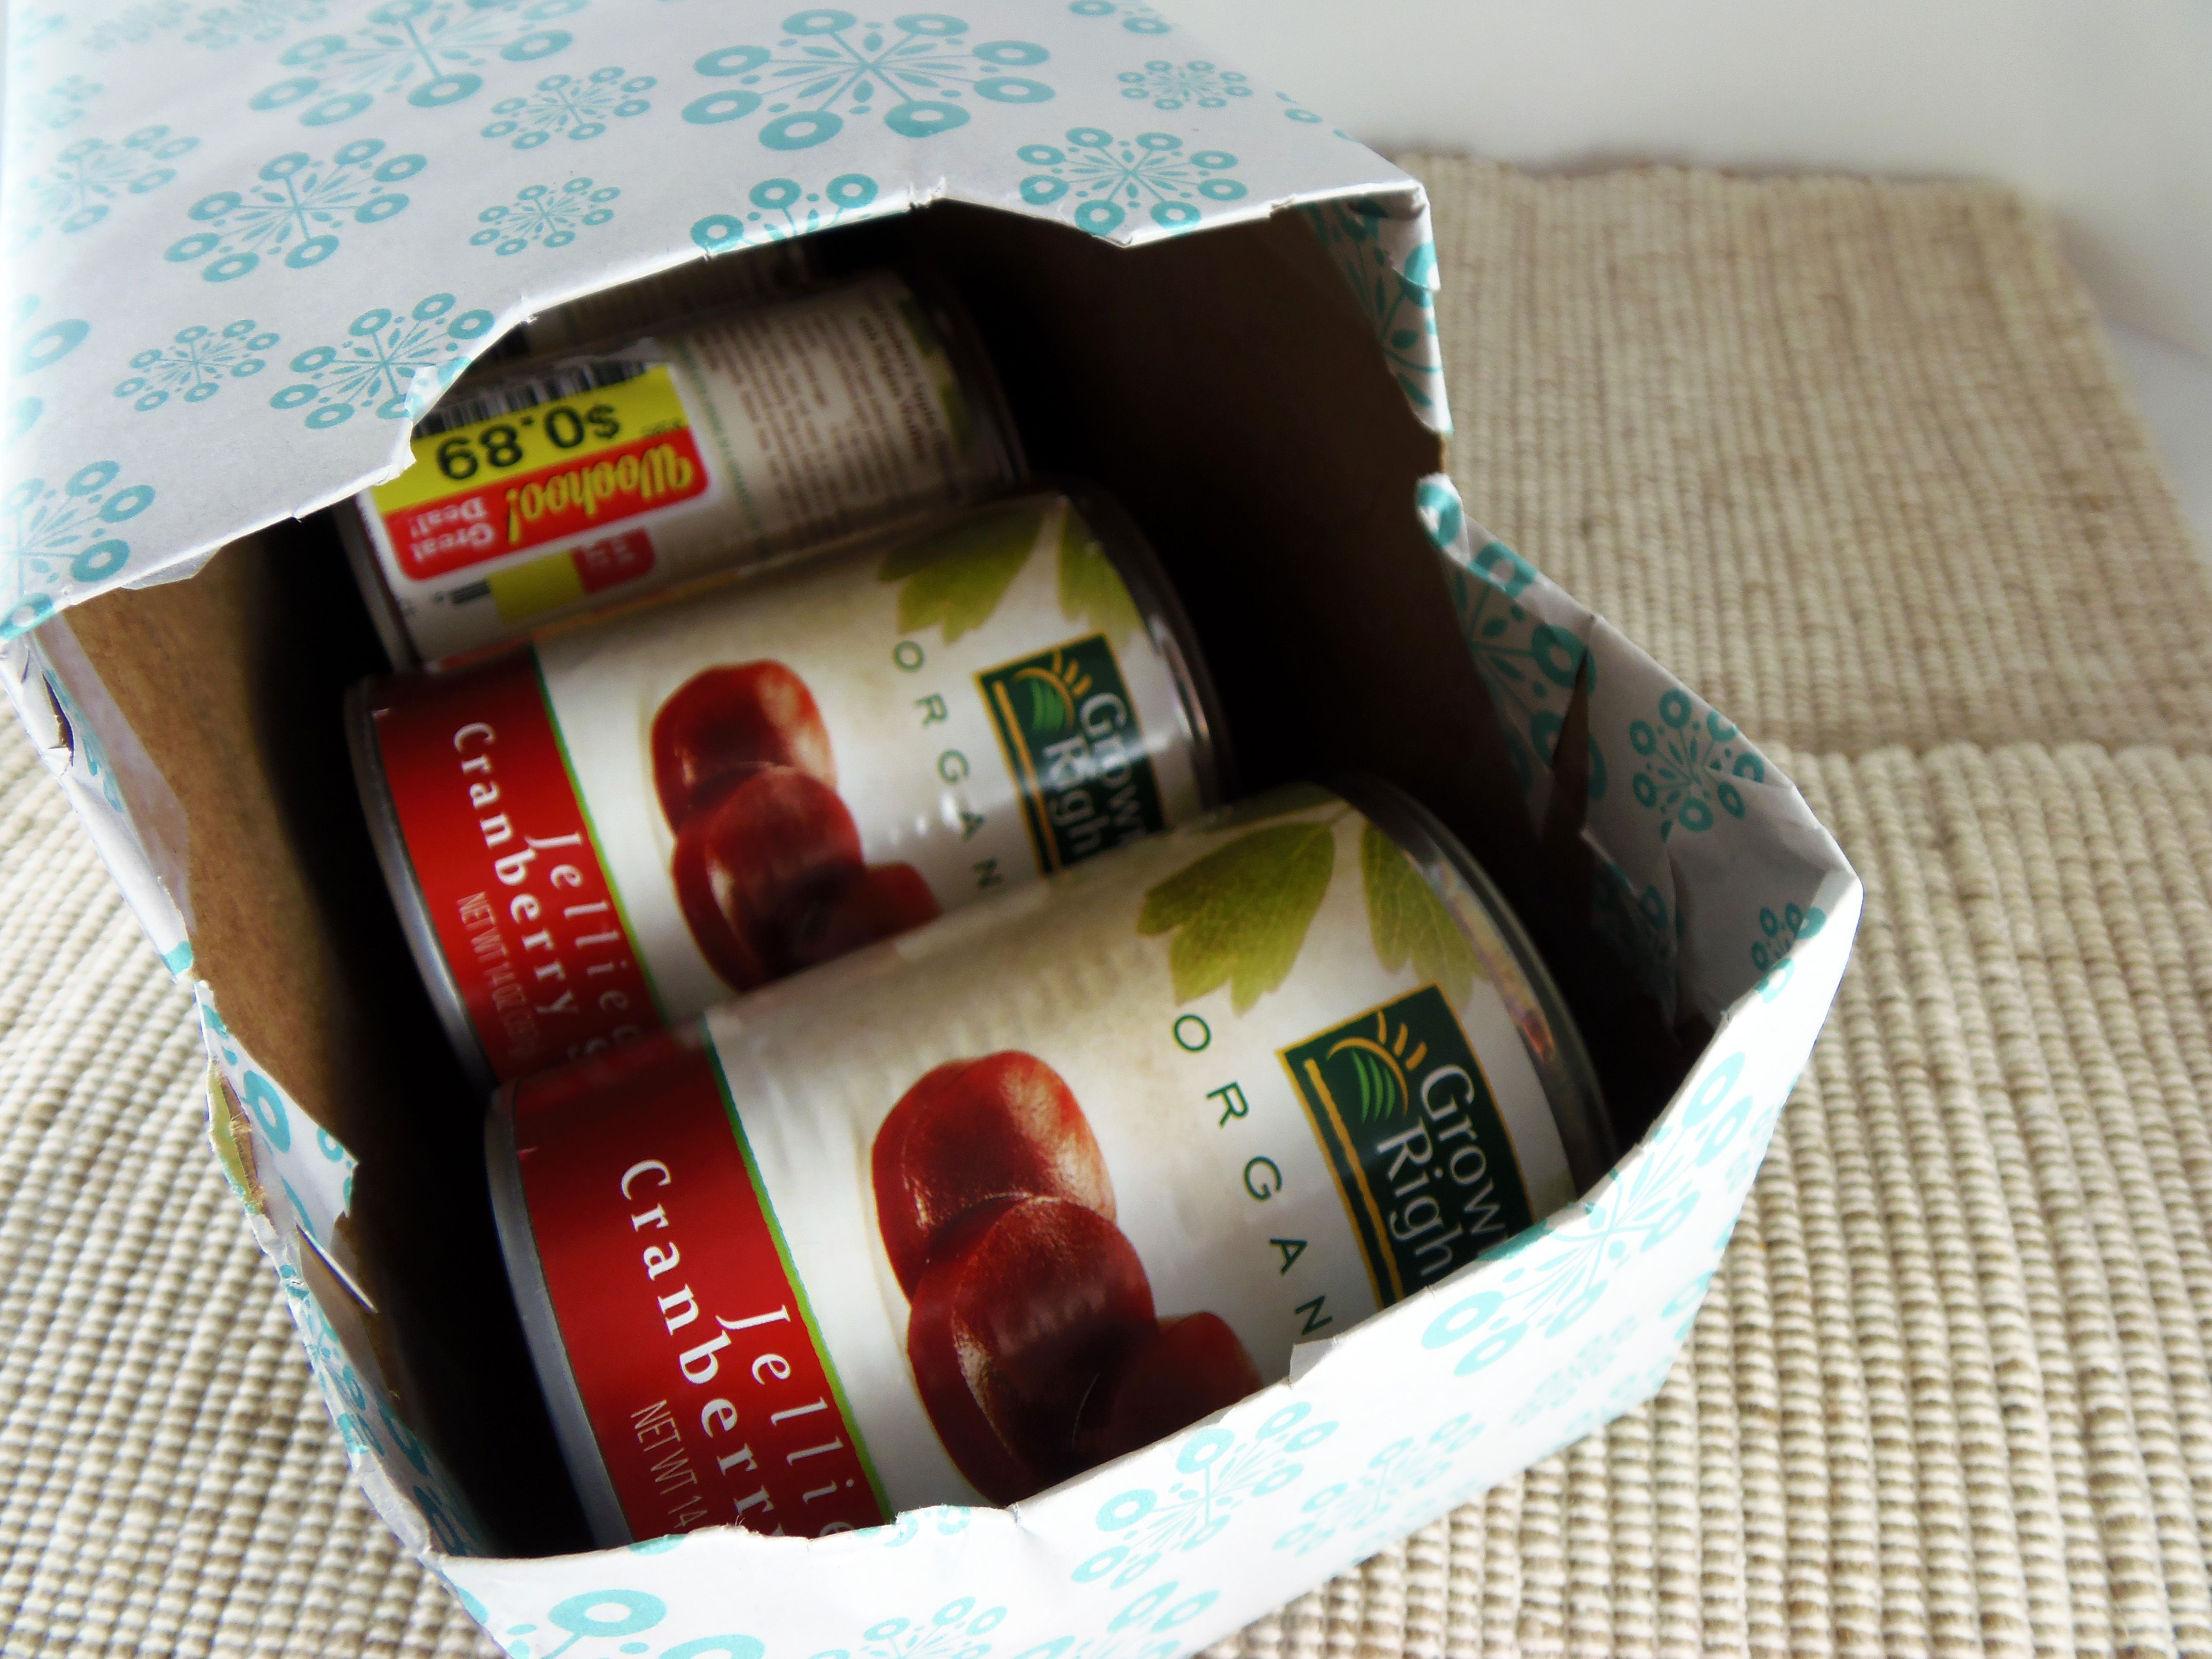 Canned goods in soda can box